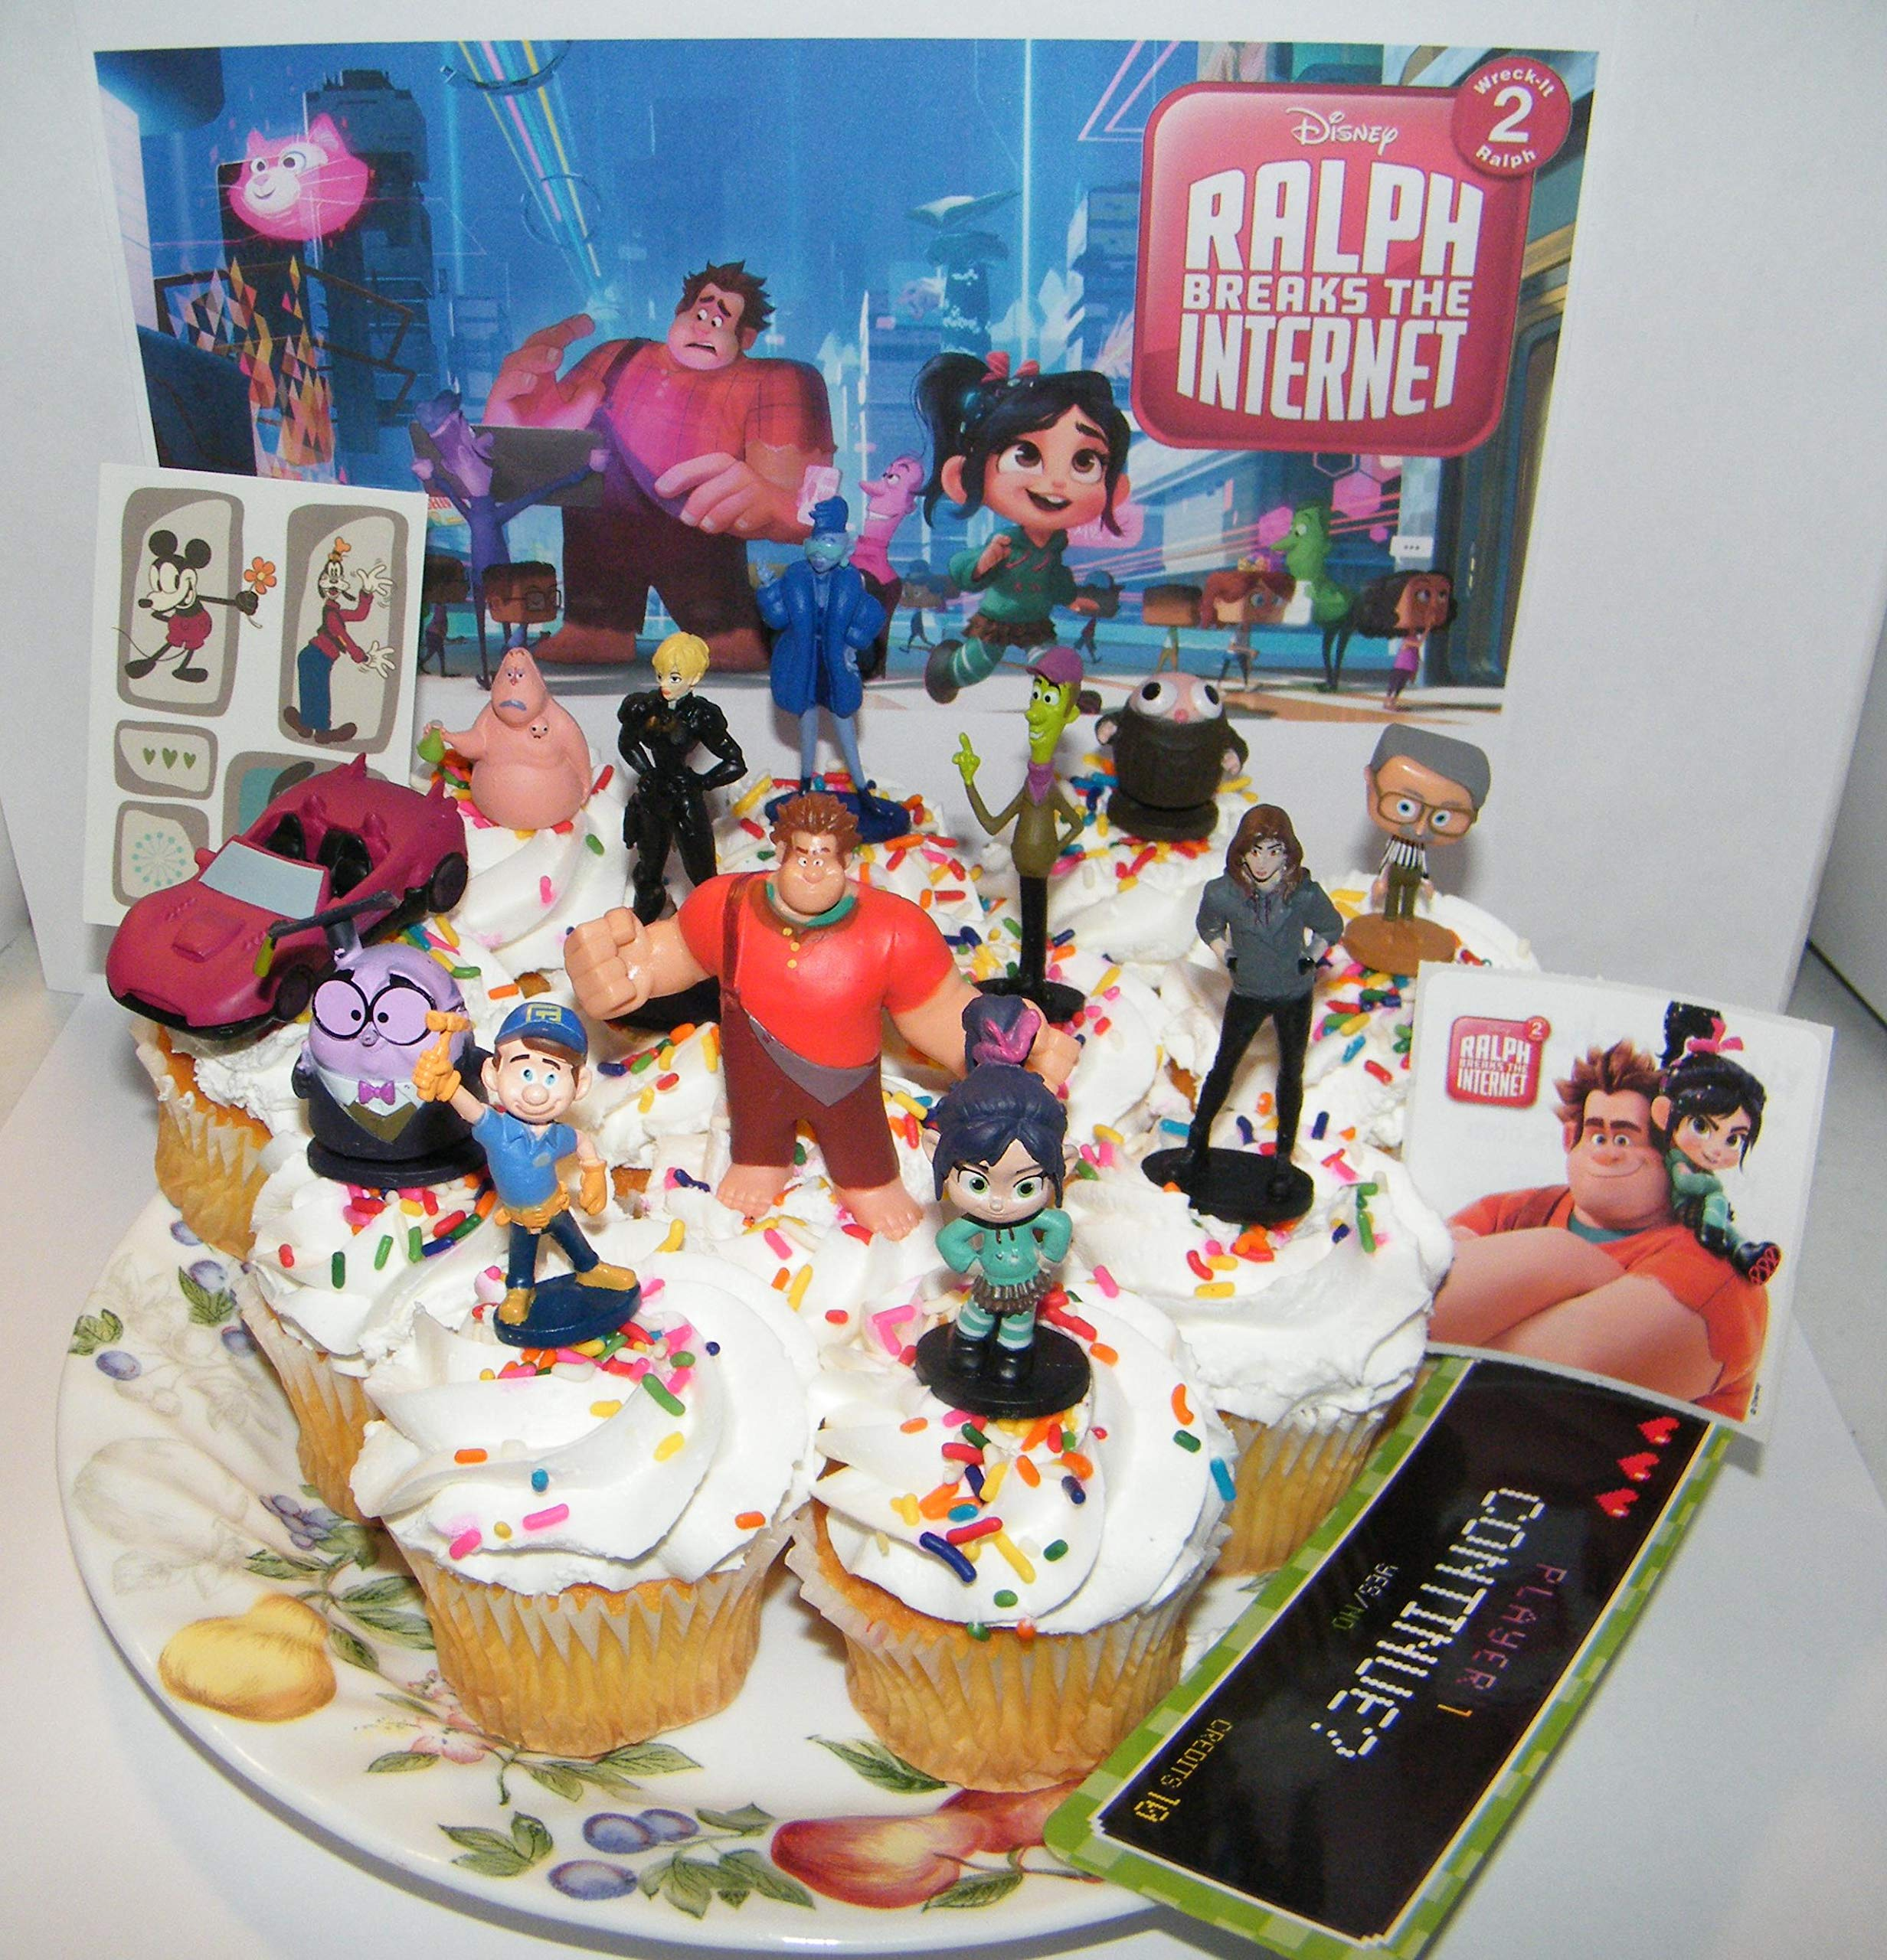 Ralph Breaks the Internet Deluxe Cake Toppers Cupcake Decorations Set of 15 with 12 Figures Featuring New and Classic Characters, Race Car, Sticker and More!